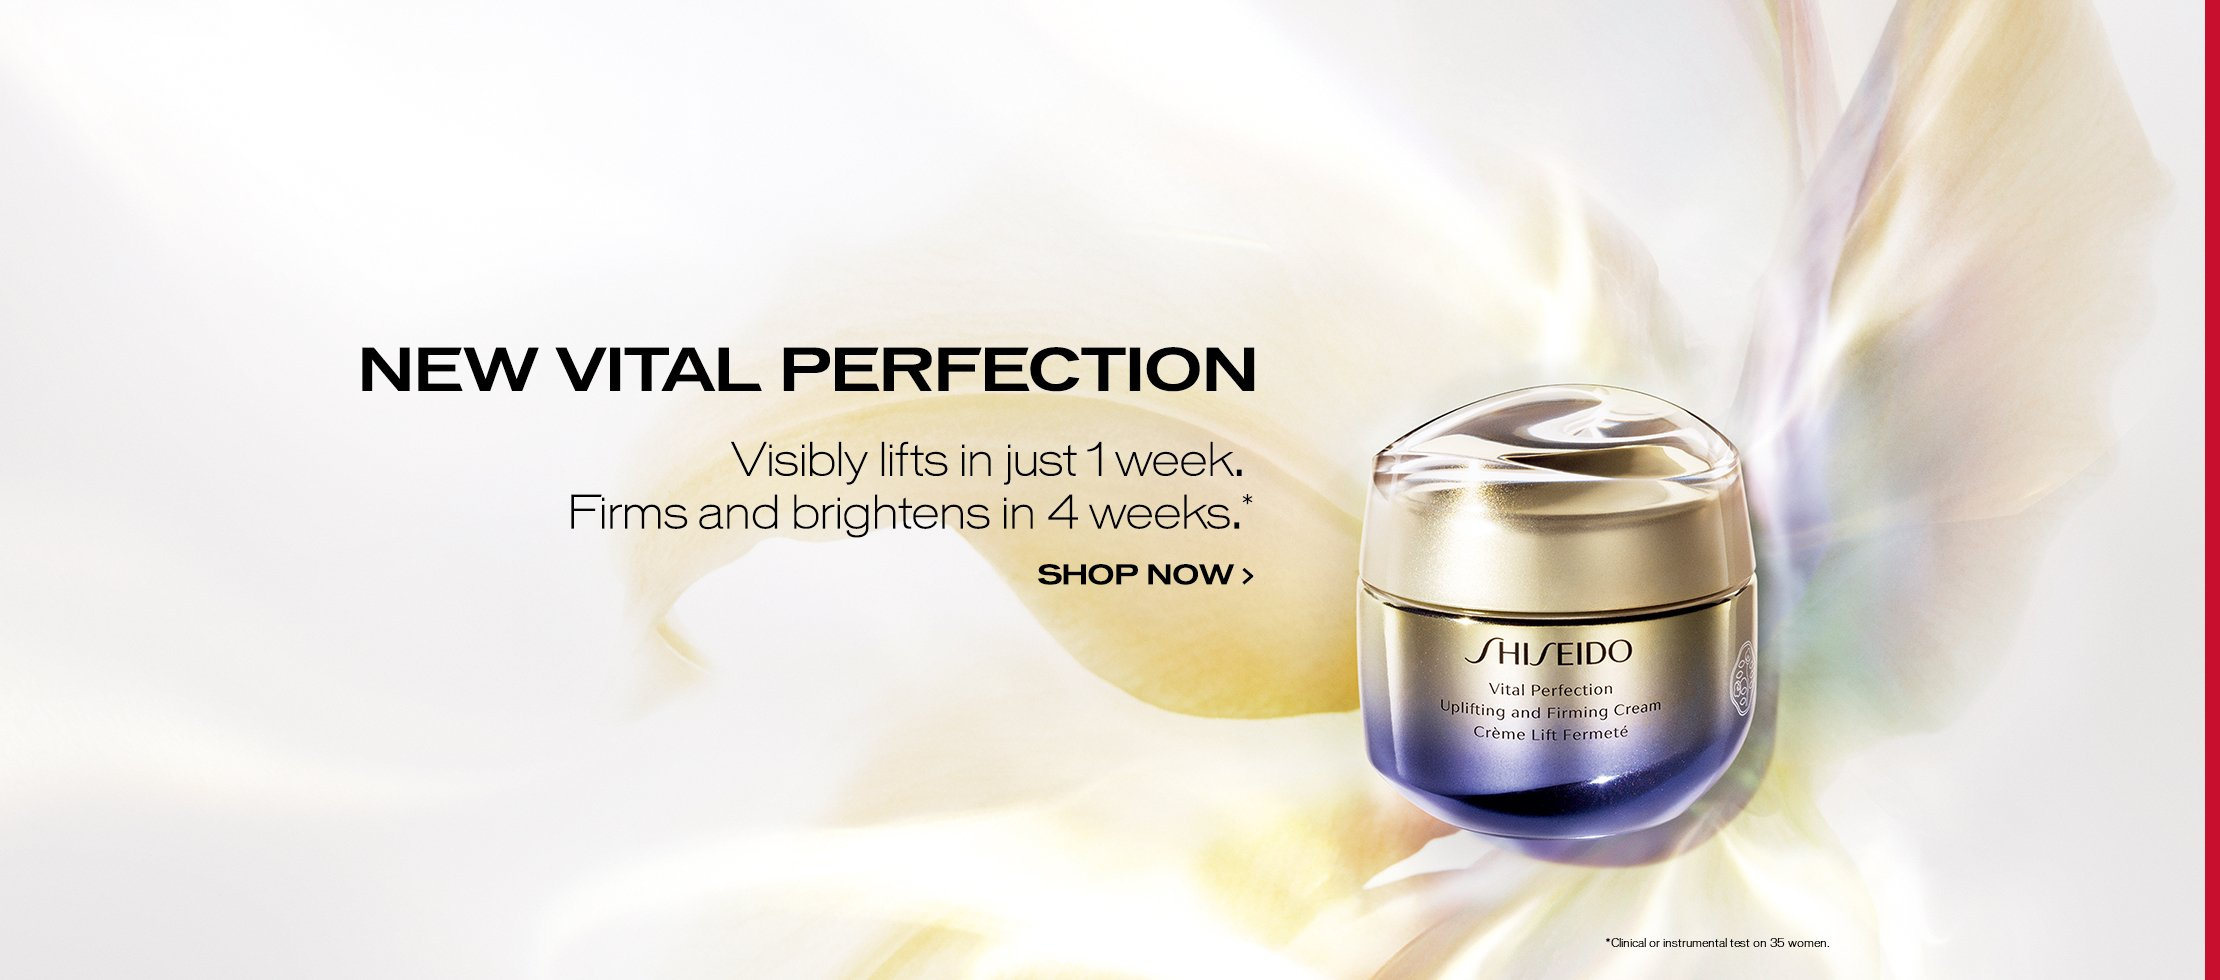 Visibly lifts in just 1 week. Firms and brightens in 4 weeks.